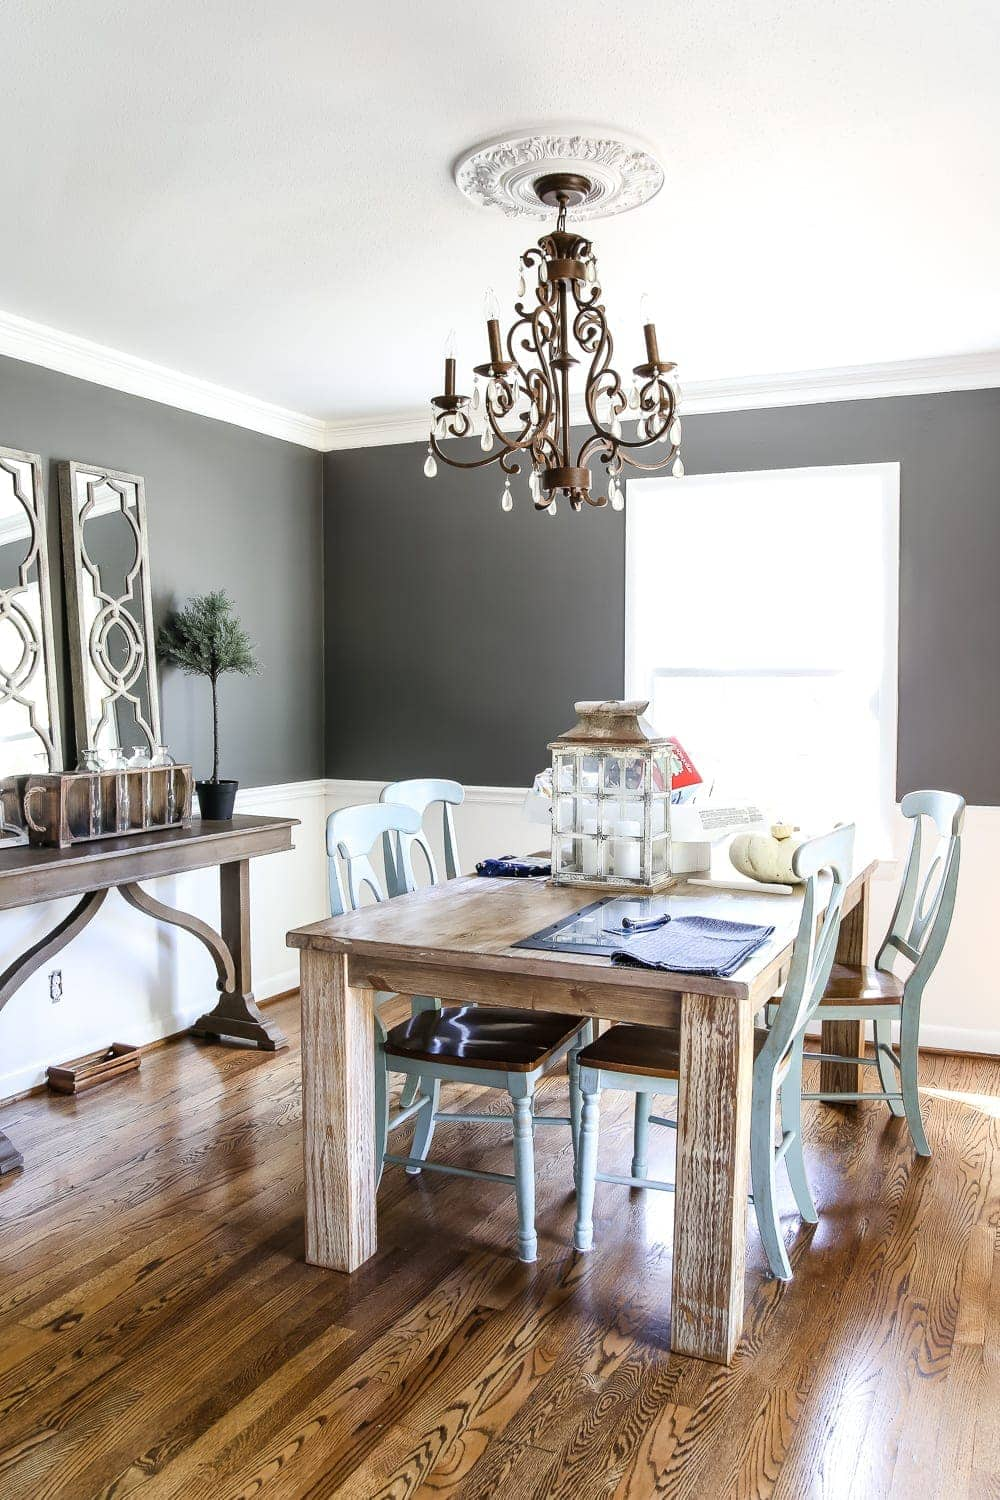 Messy House Tour 2017   blesserhouse.com - A real life messy house tour of a blogger with a little perspective makeover. #hometour